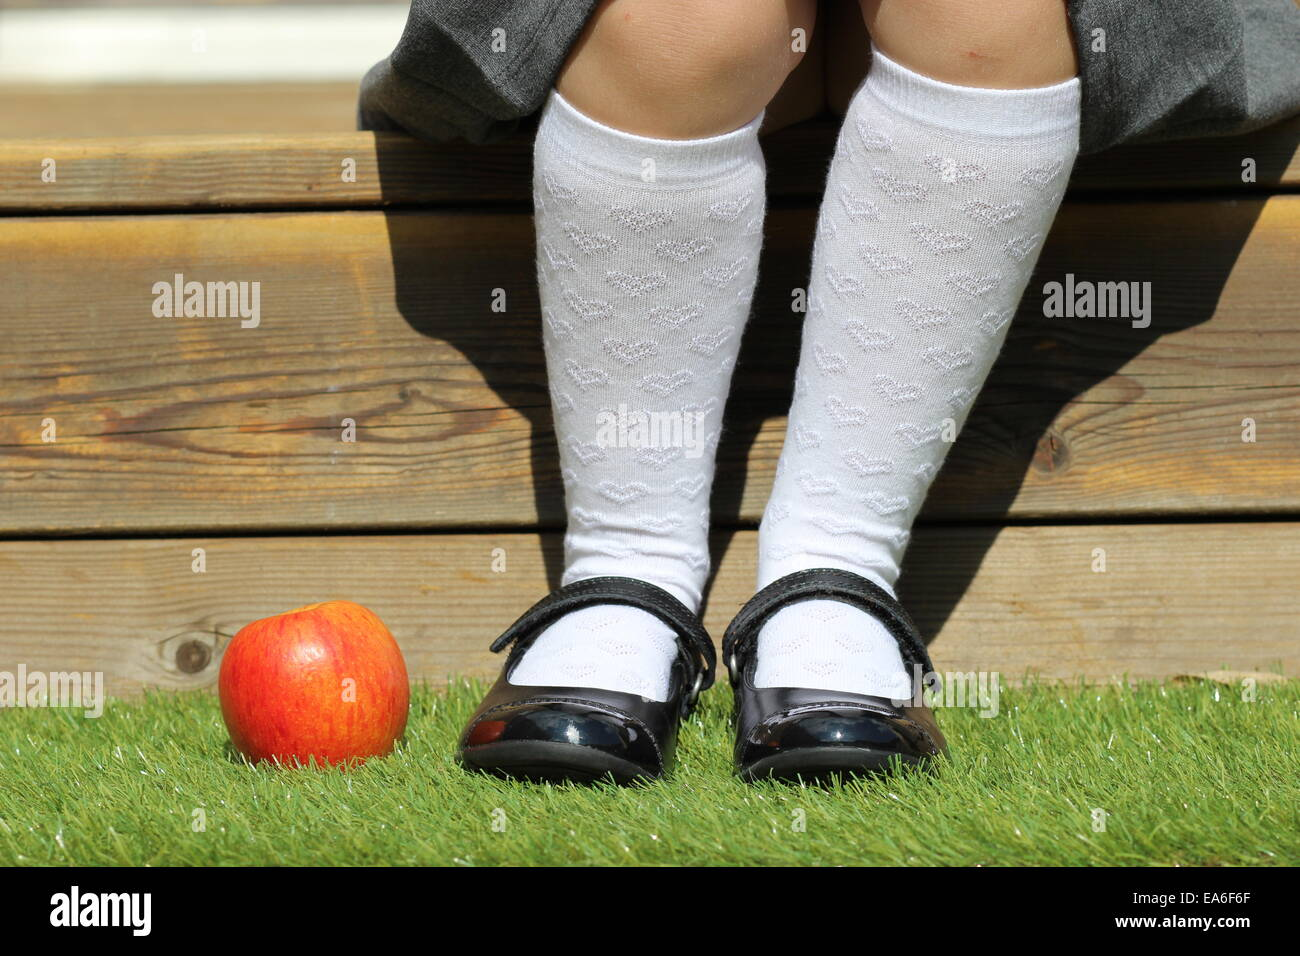 Girl sitting on step with apple on grass by her feet - Stock Image